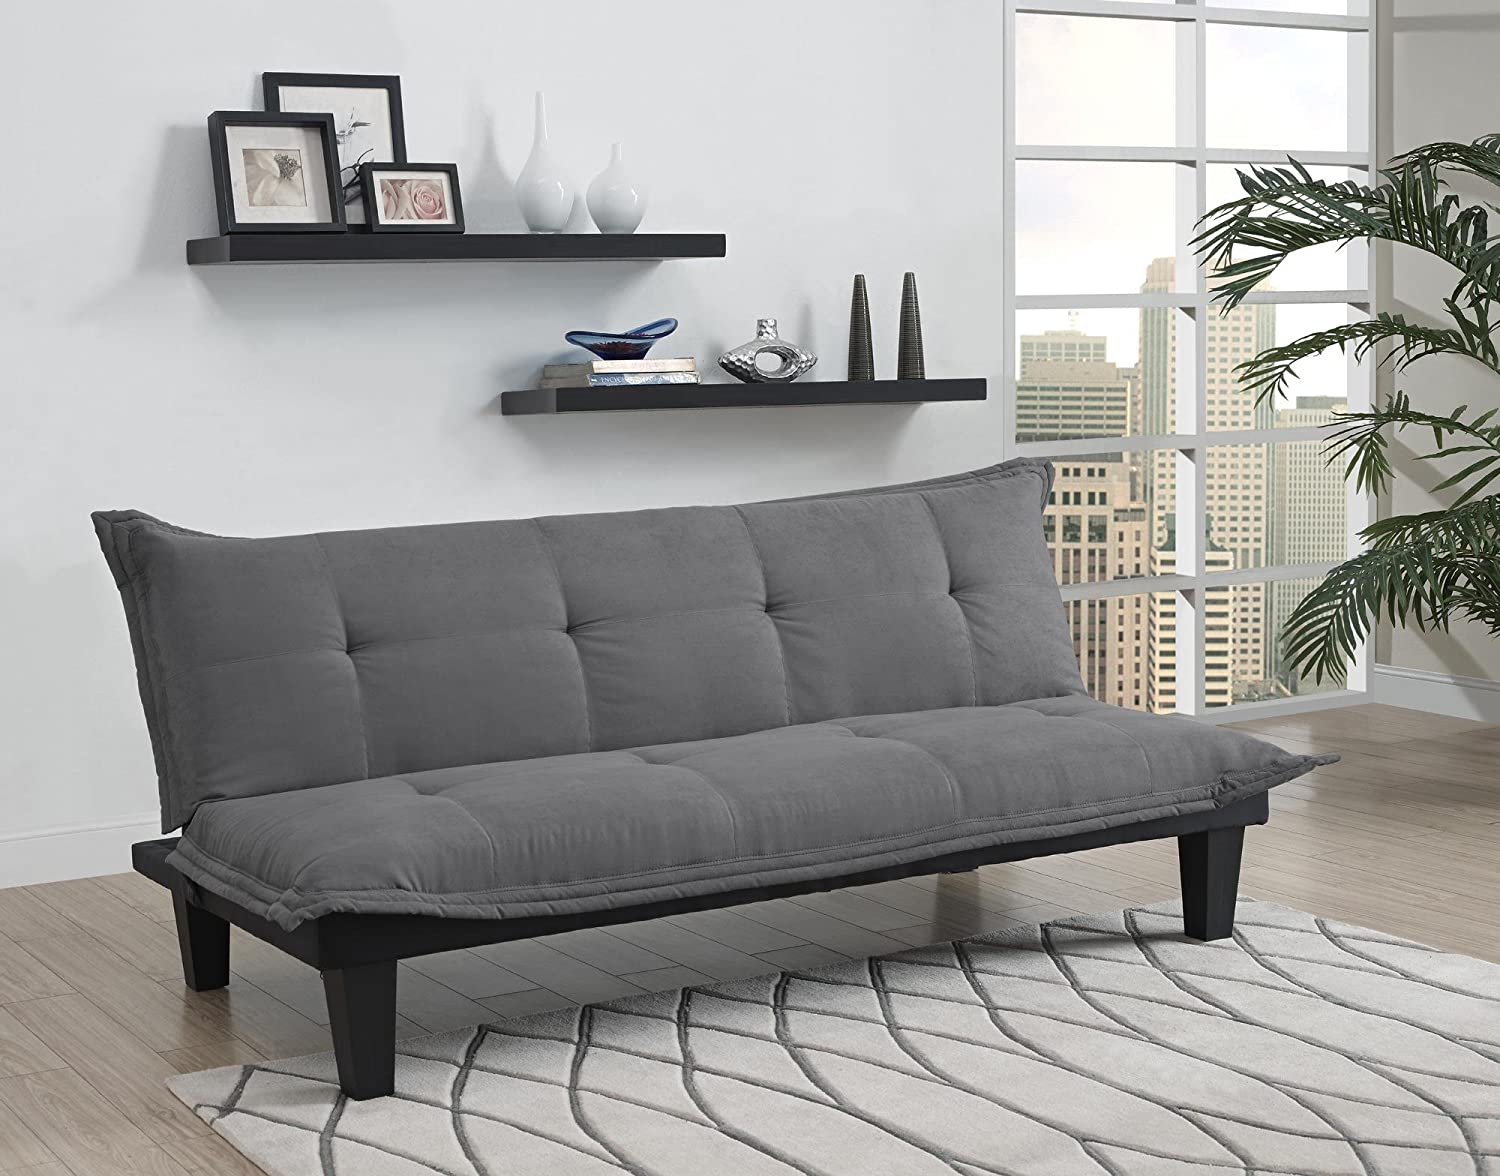 dhp lodge convertible futon couch bed with microfiber upholstery and wood legs charcoal